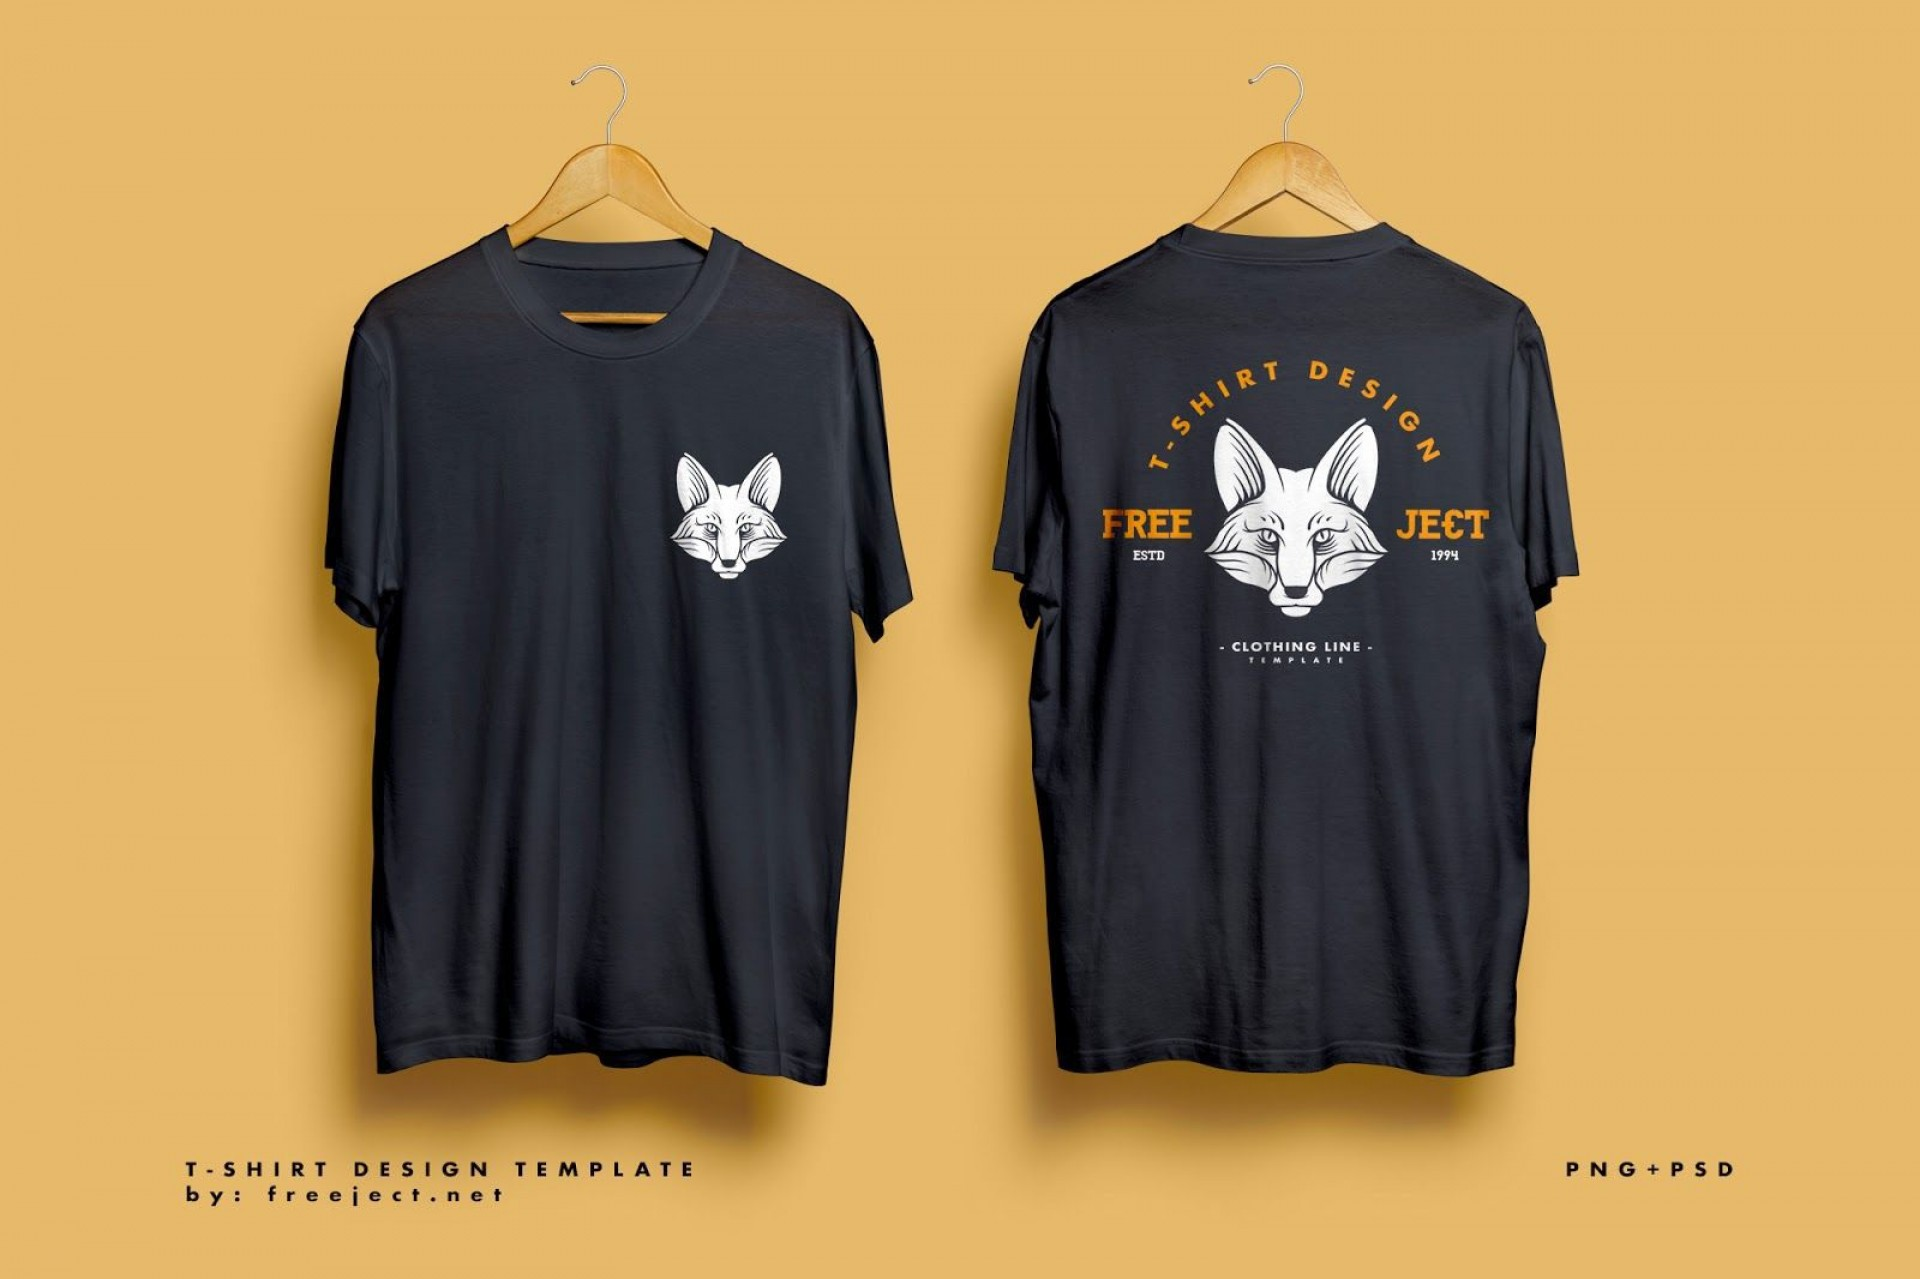 000 Breathtaking Tee Shirt Design Template Sample  Templates T Illustrator Free Download Polo Psd1920